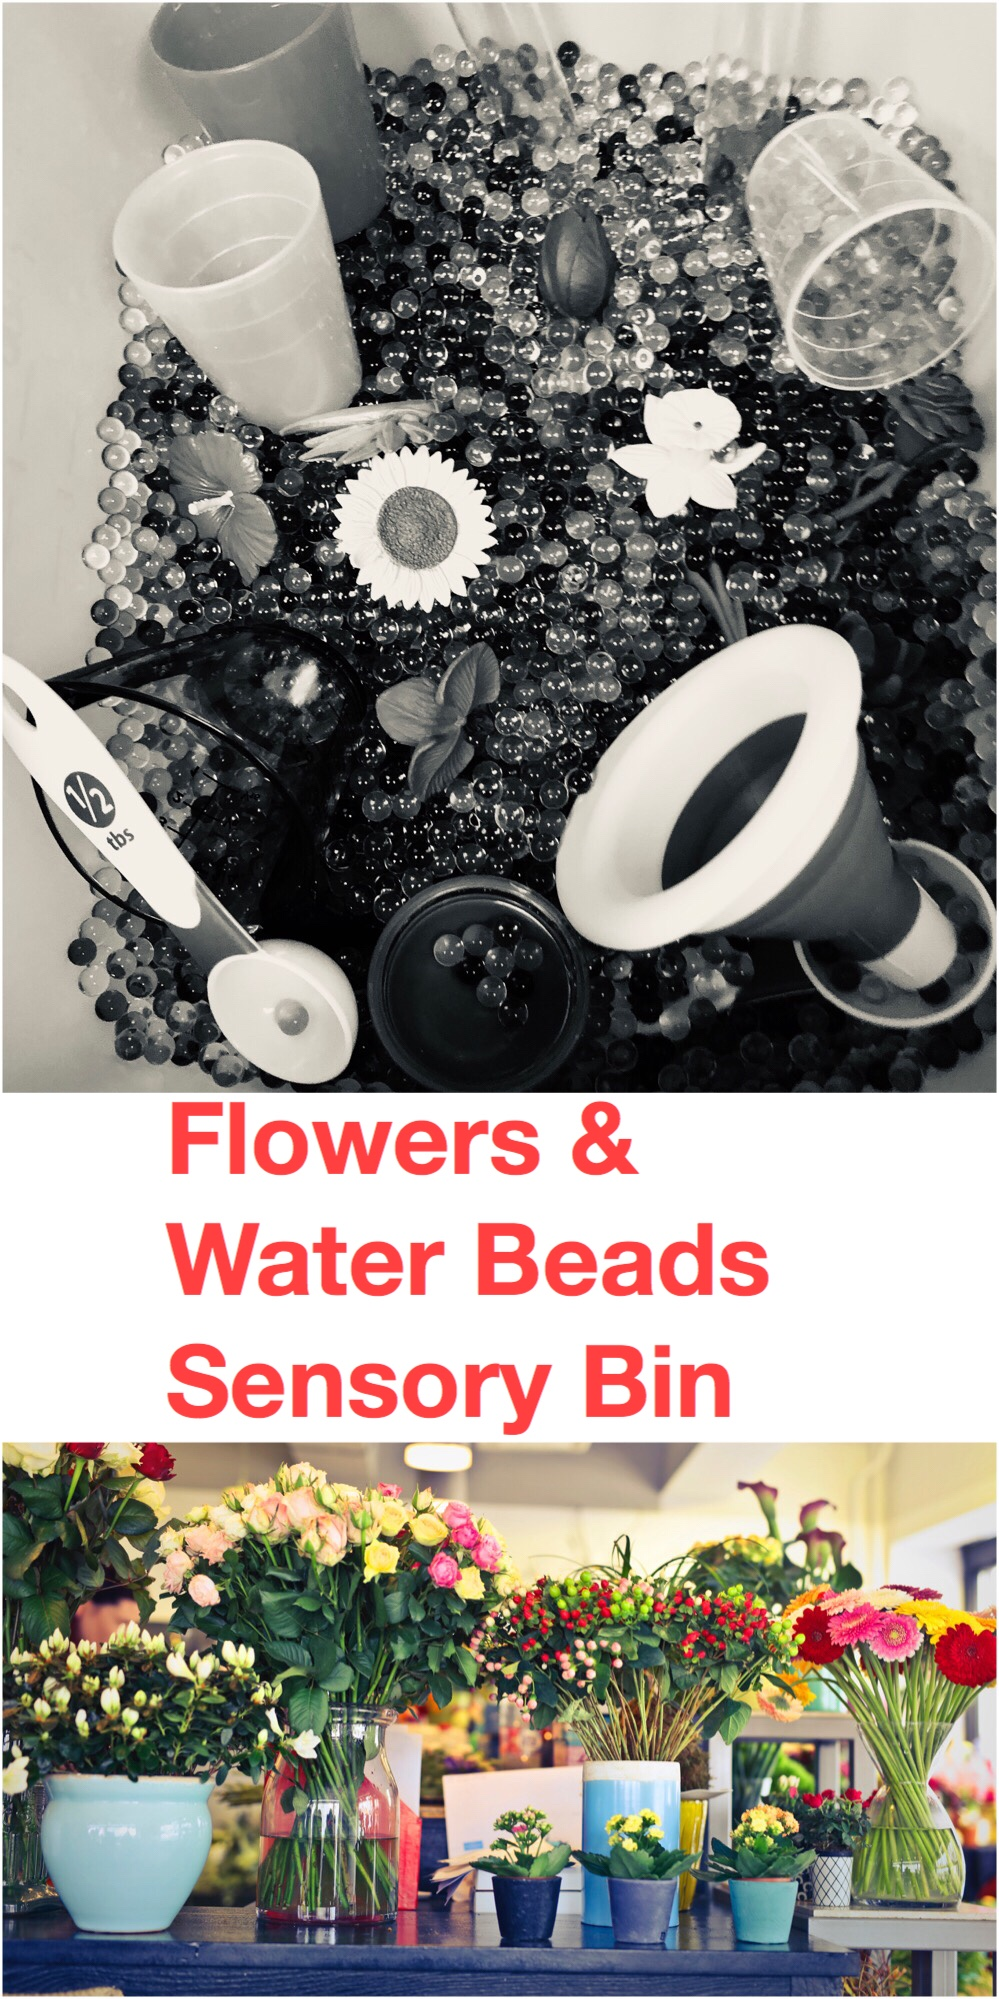 Flowers and Water Beads Sensory Bin pin